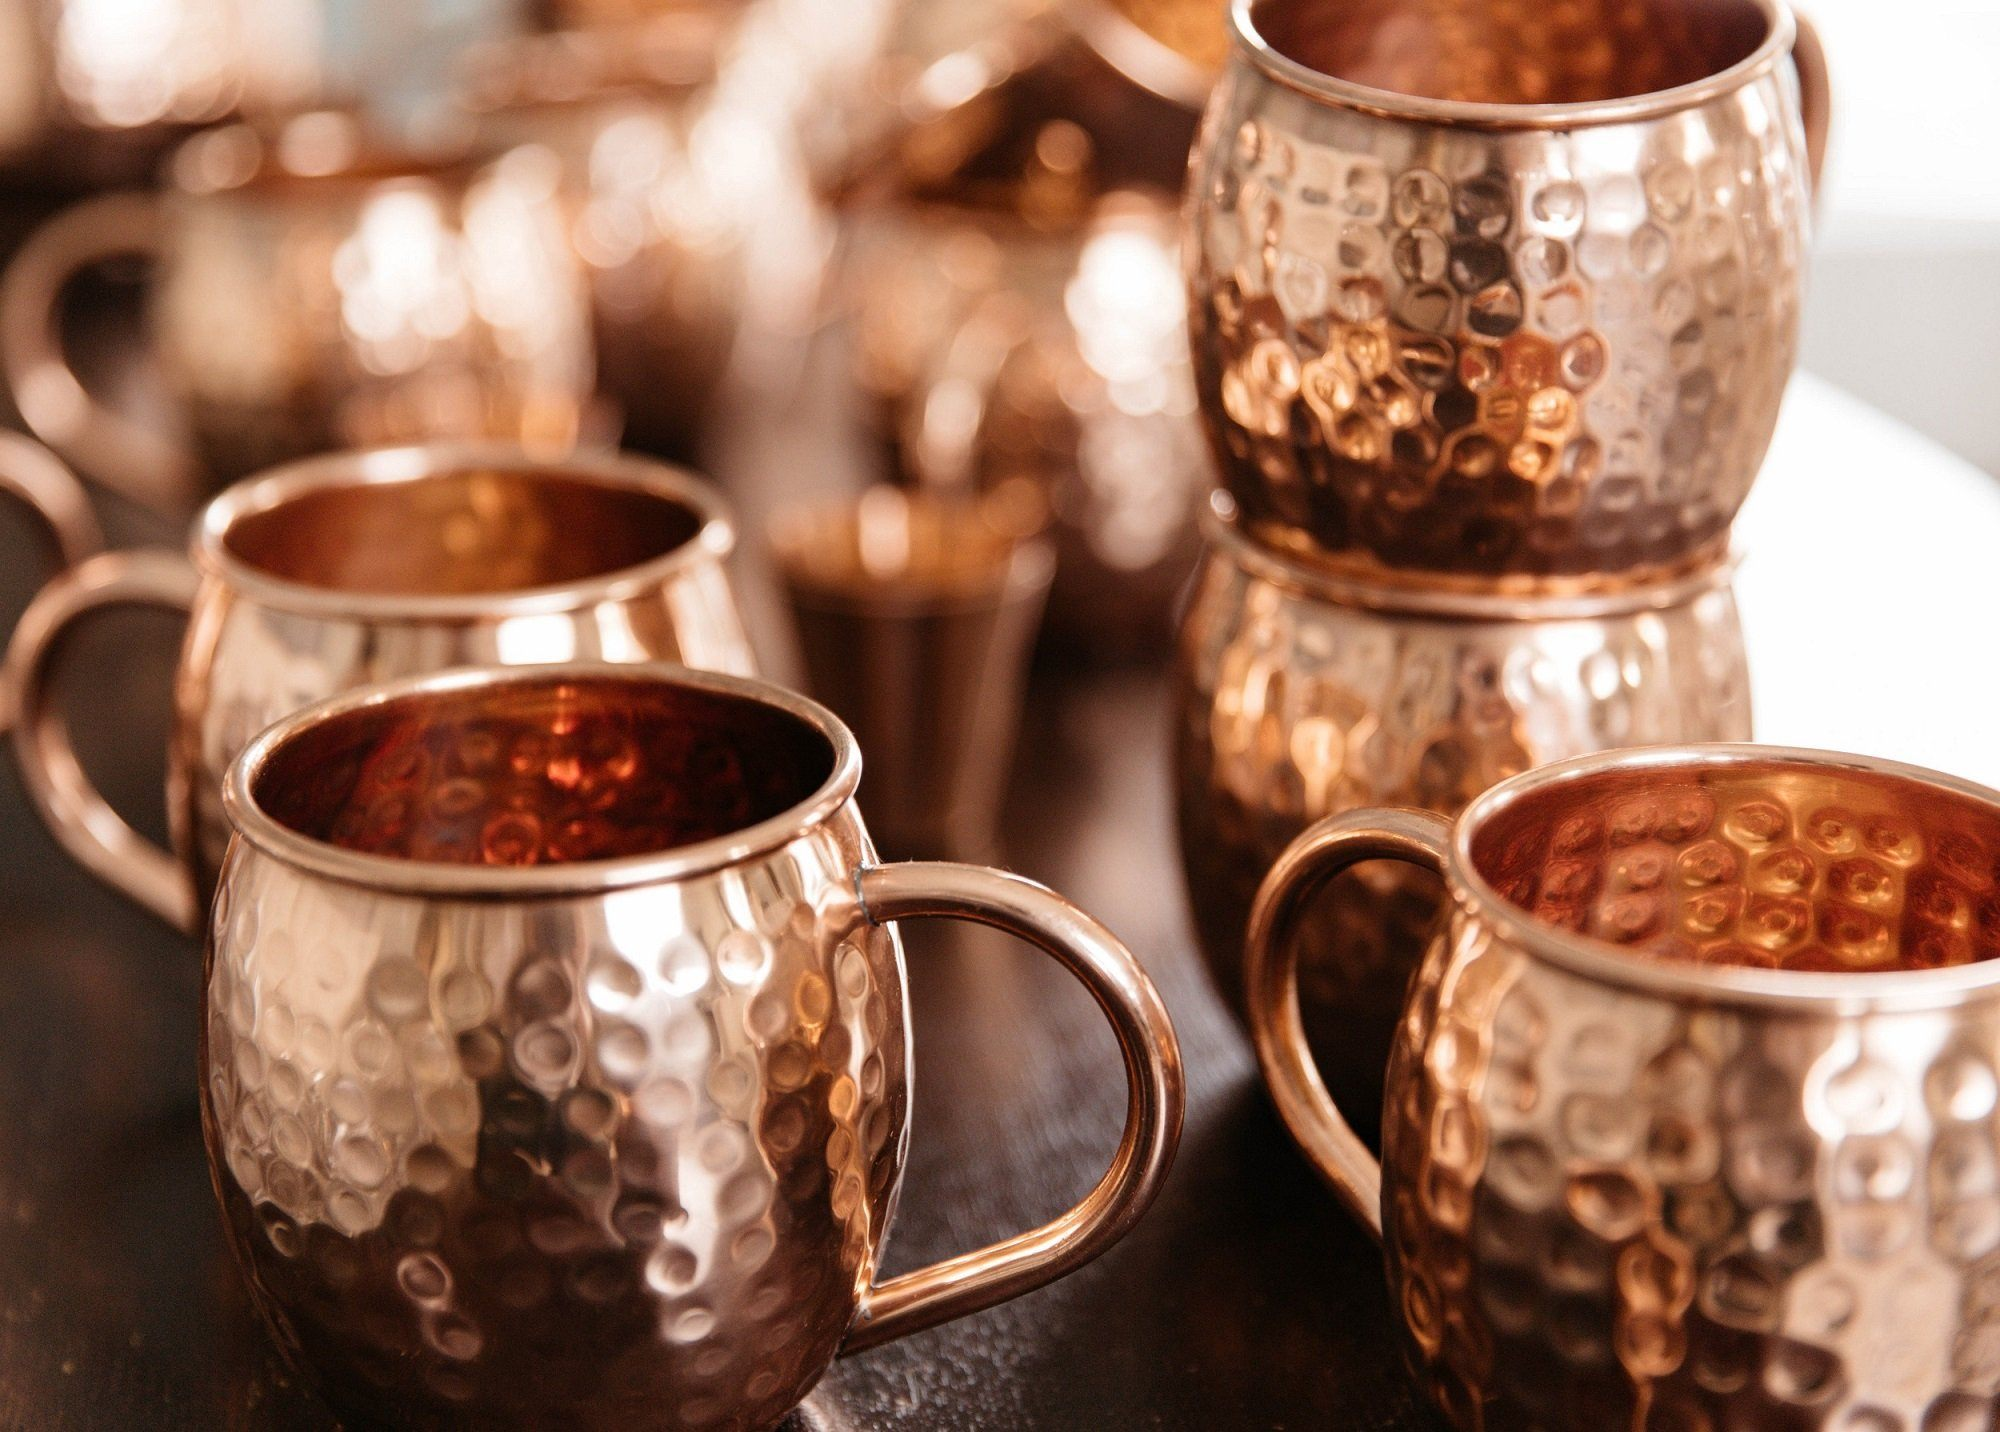 Urban Vintage LA Moscow Mule Copper Mugs On A Coffee Table